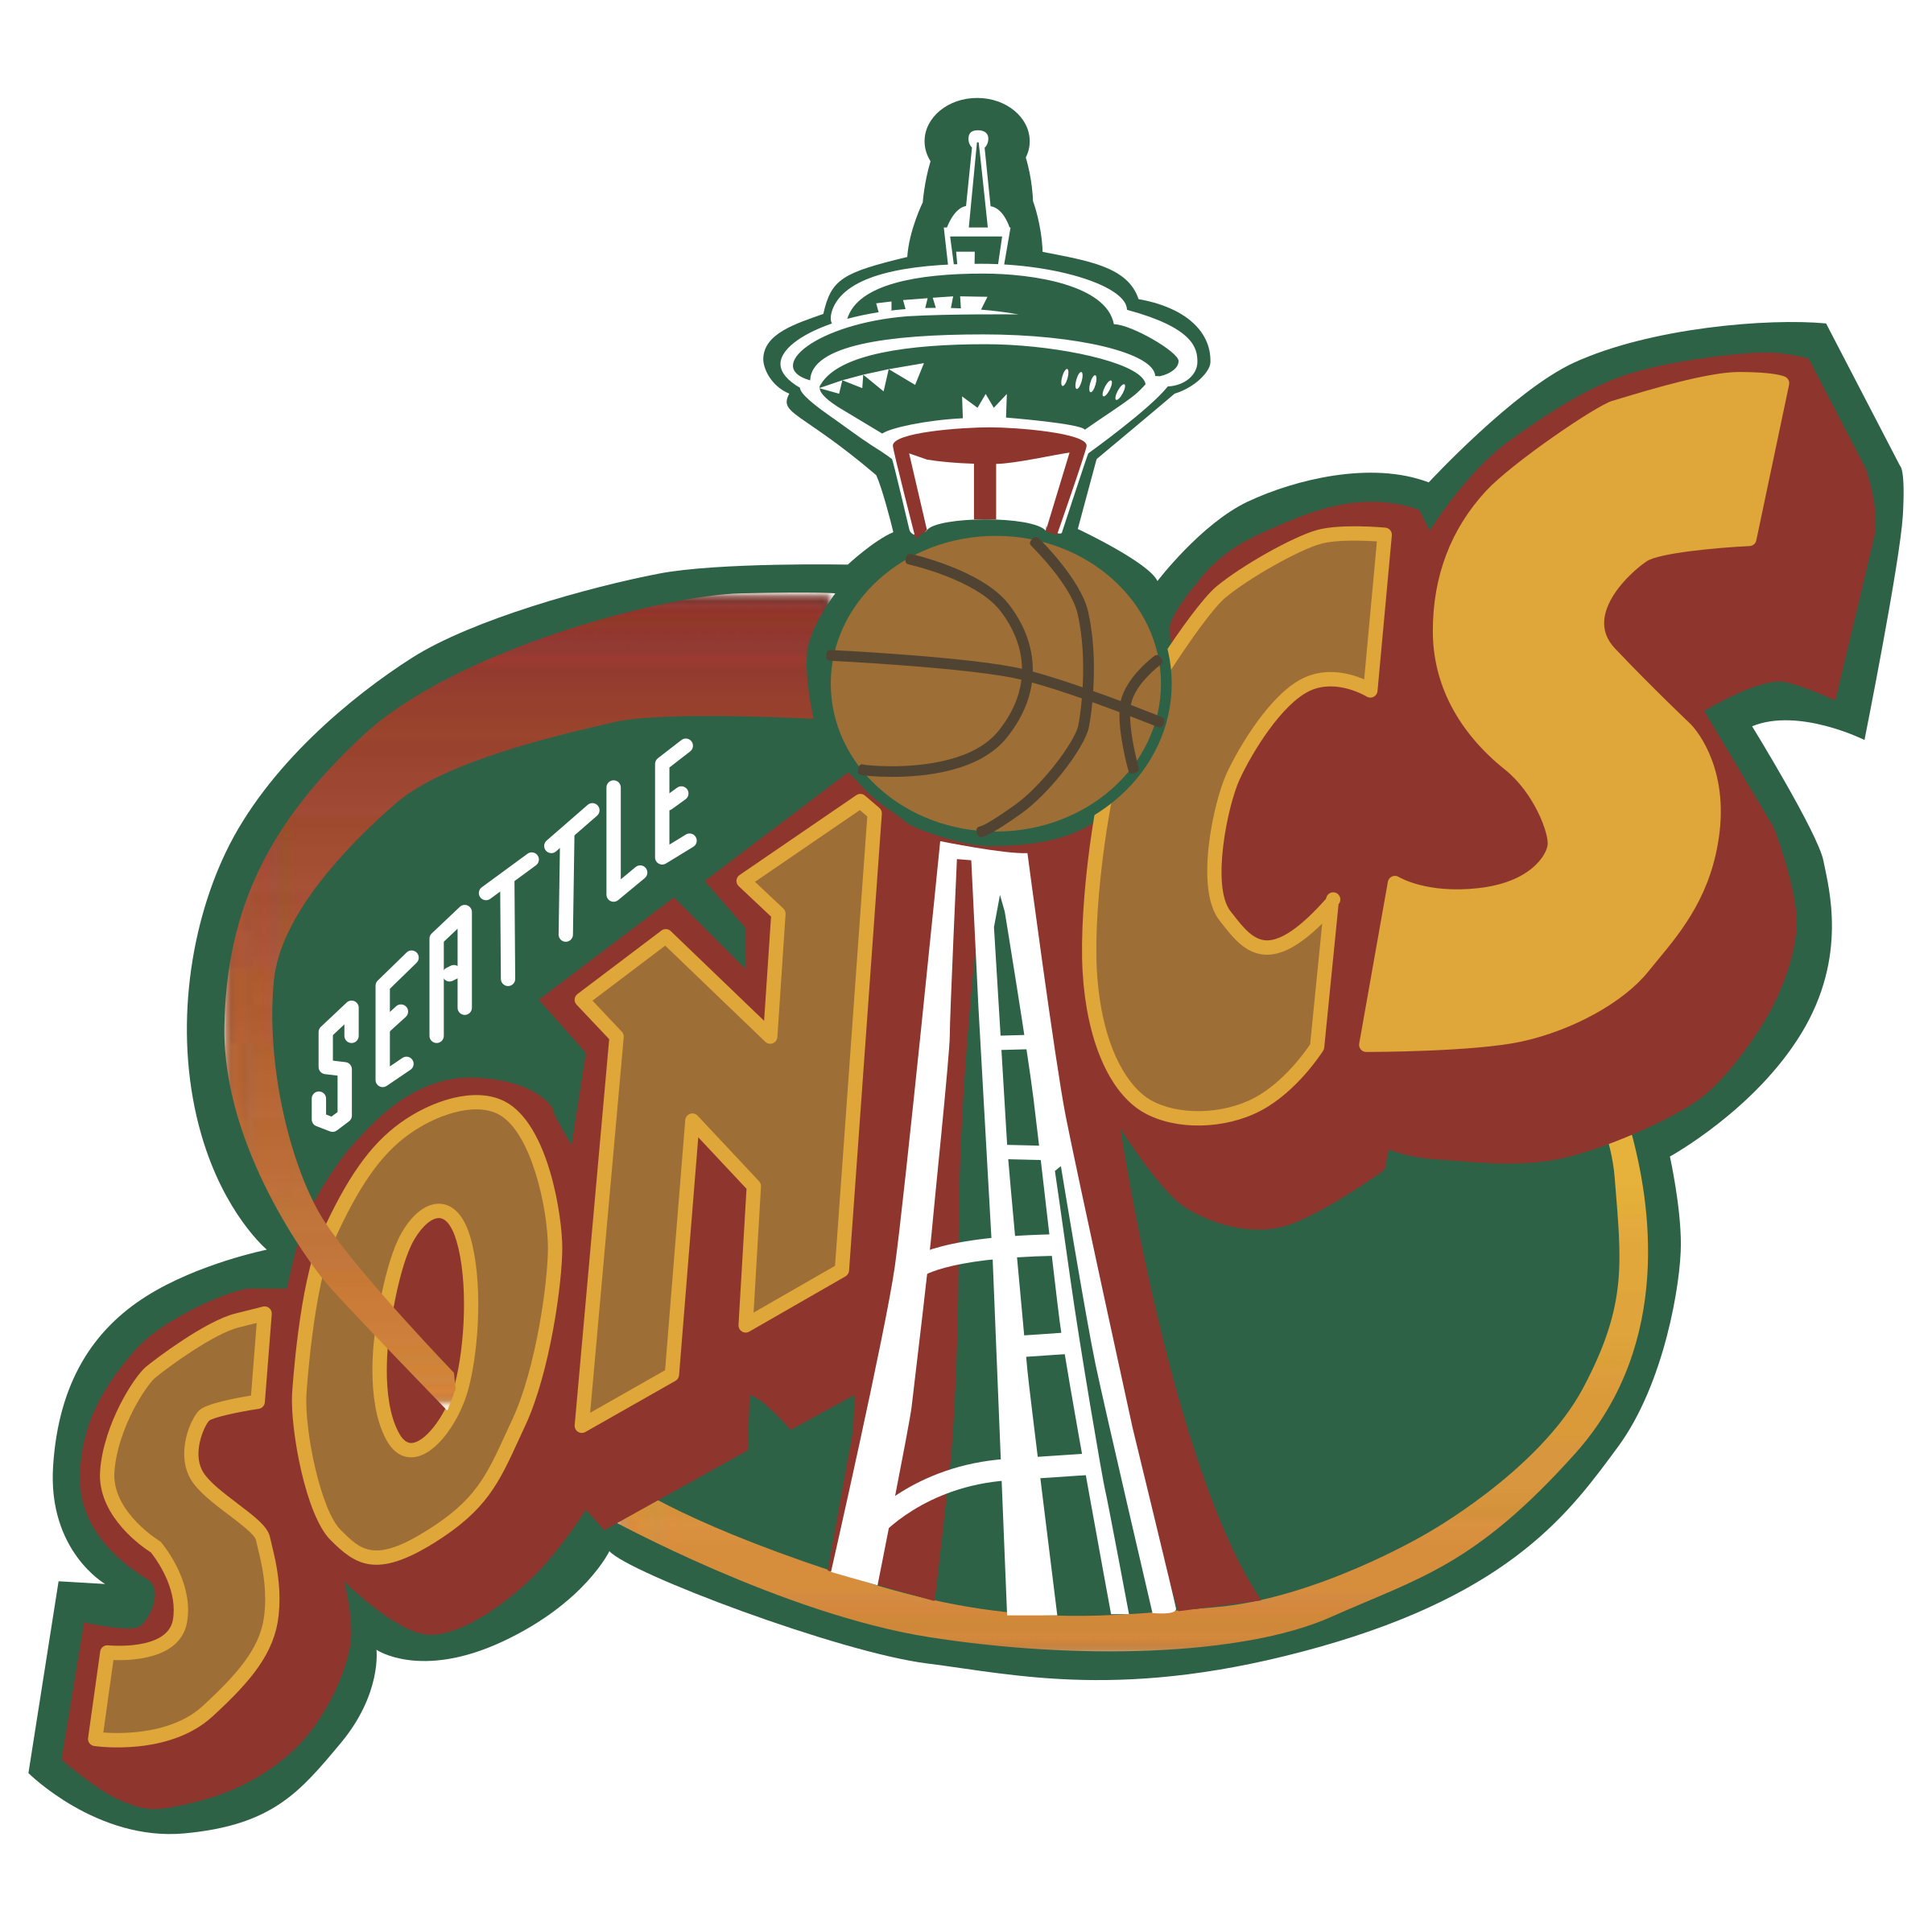 seattle supersonics logo png transparent svg vector freebie supply rh freebiesupply com supersonics logo nba 2k18 supersonics logo 2k18